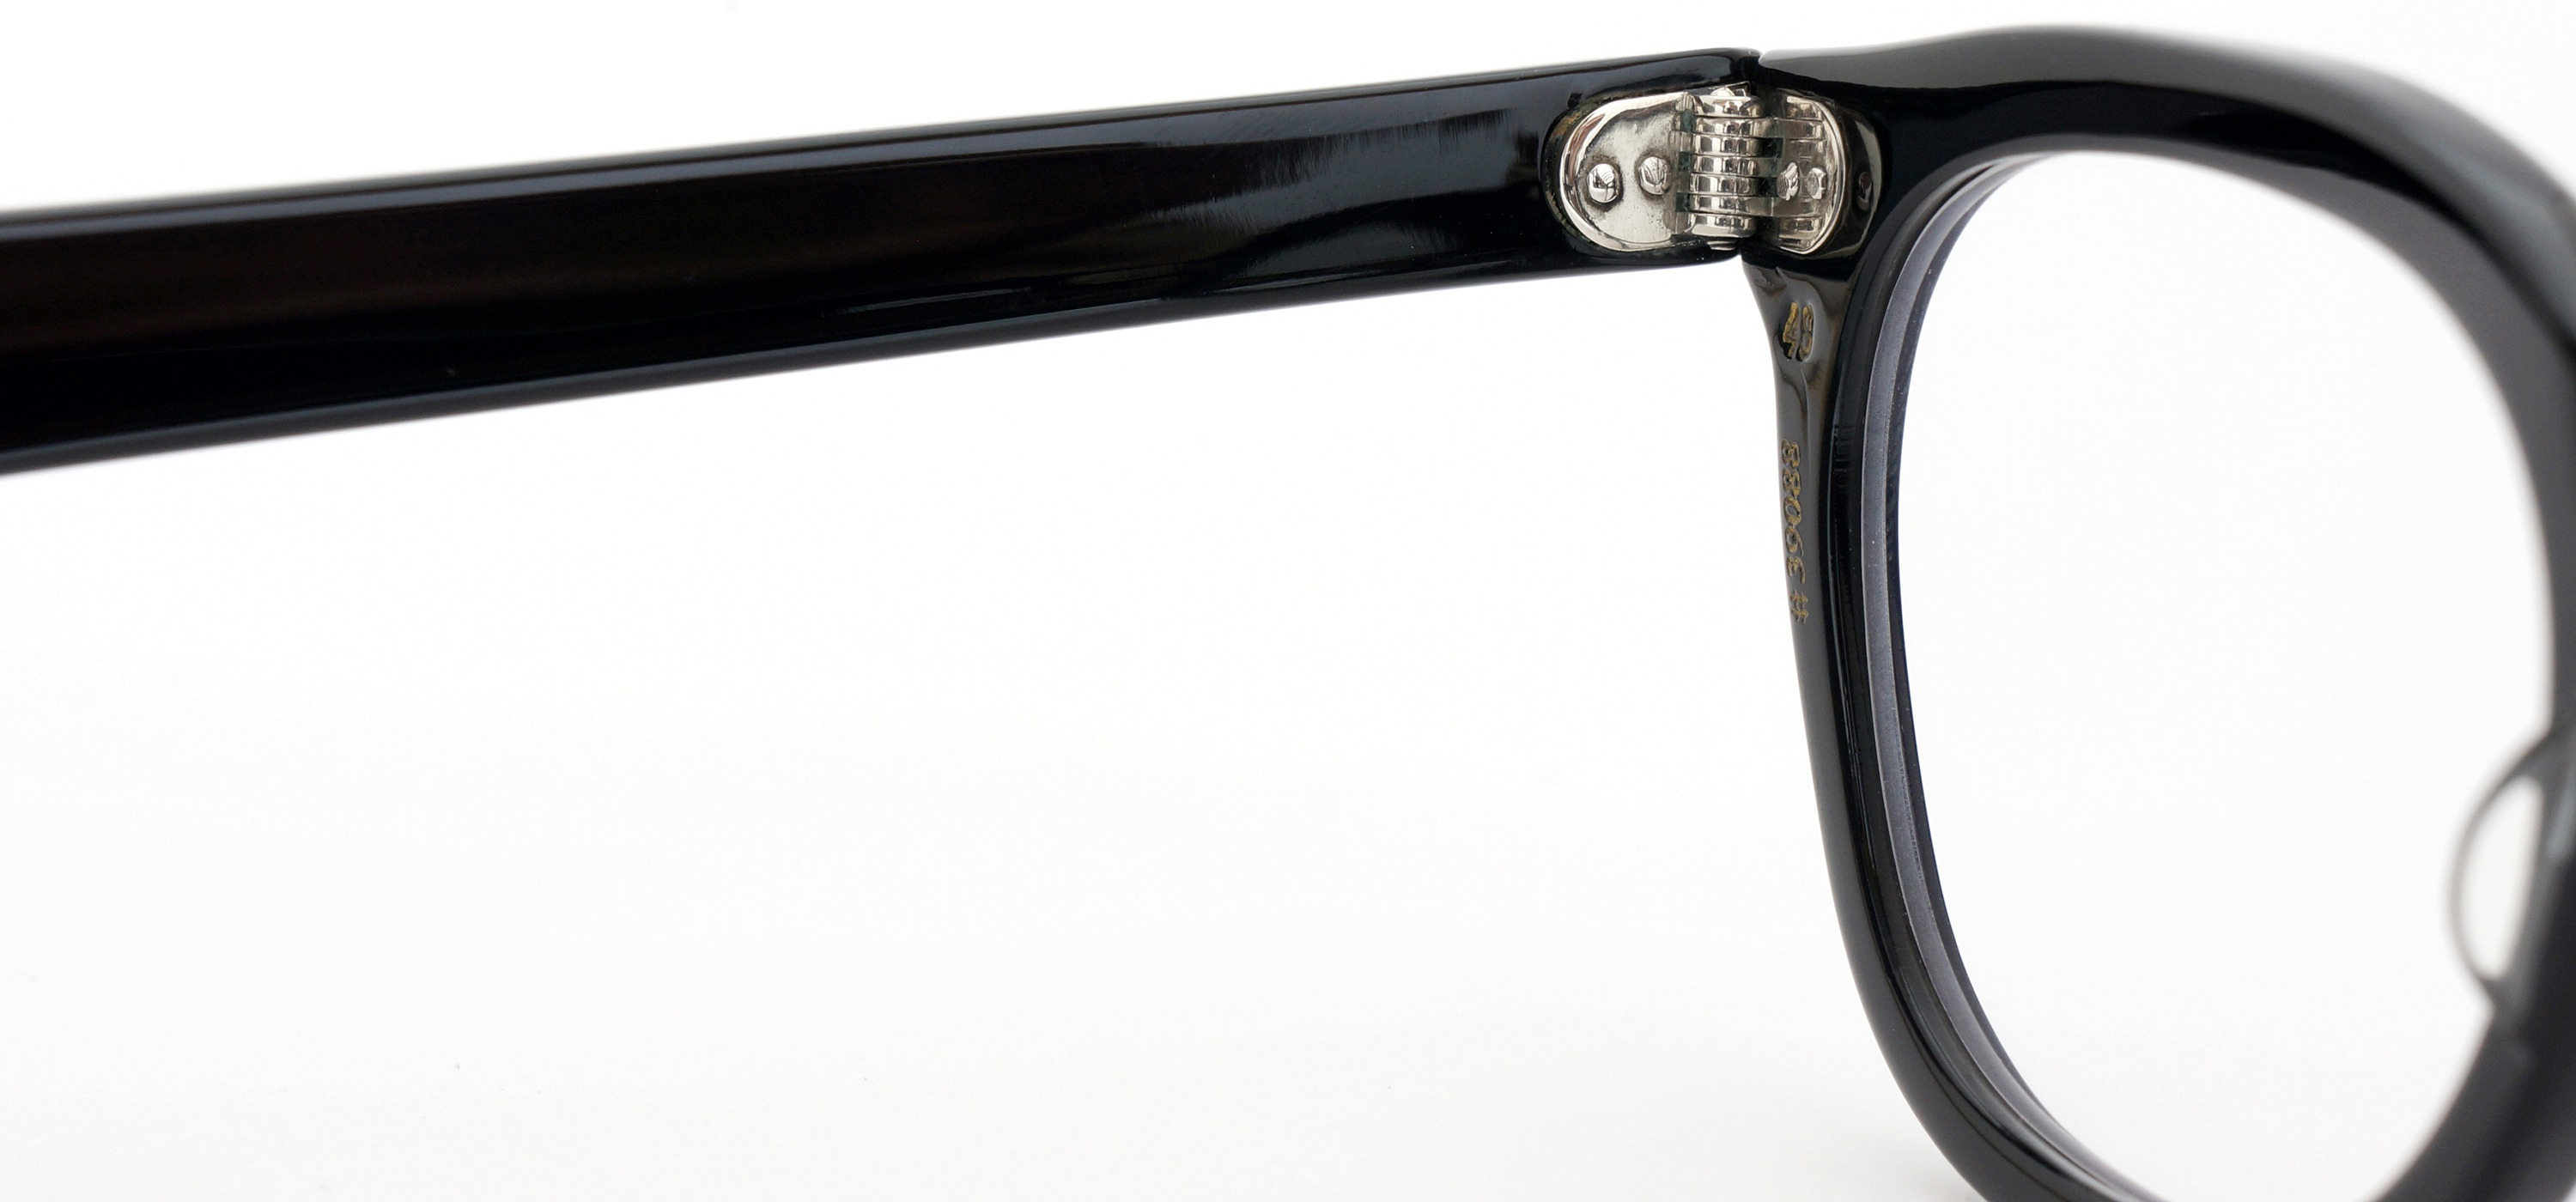 The Spectacle メガネ 1950s-70s TART OPTICAL ARNEL(FRAME USA) BLACK 48-22 イメージ10